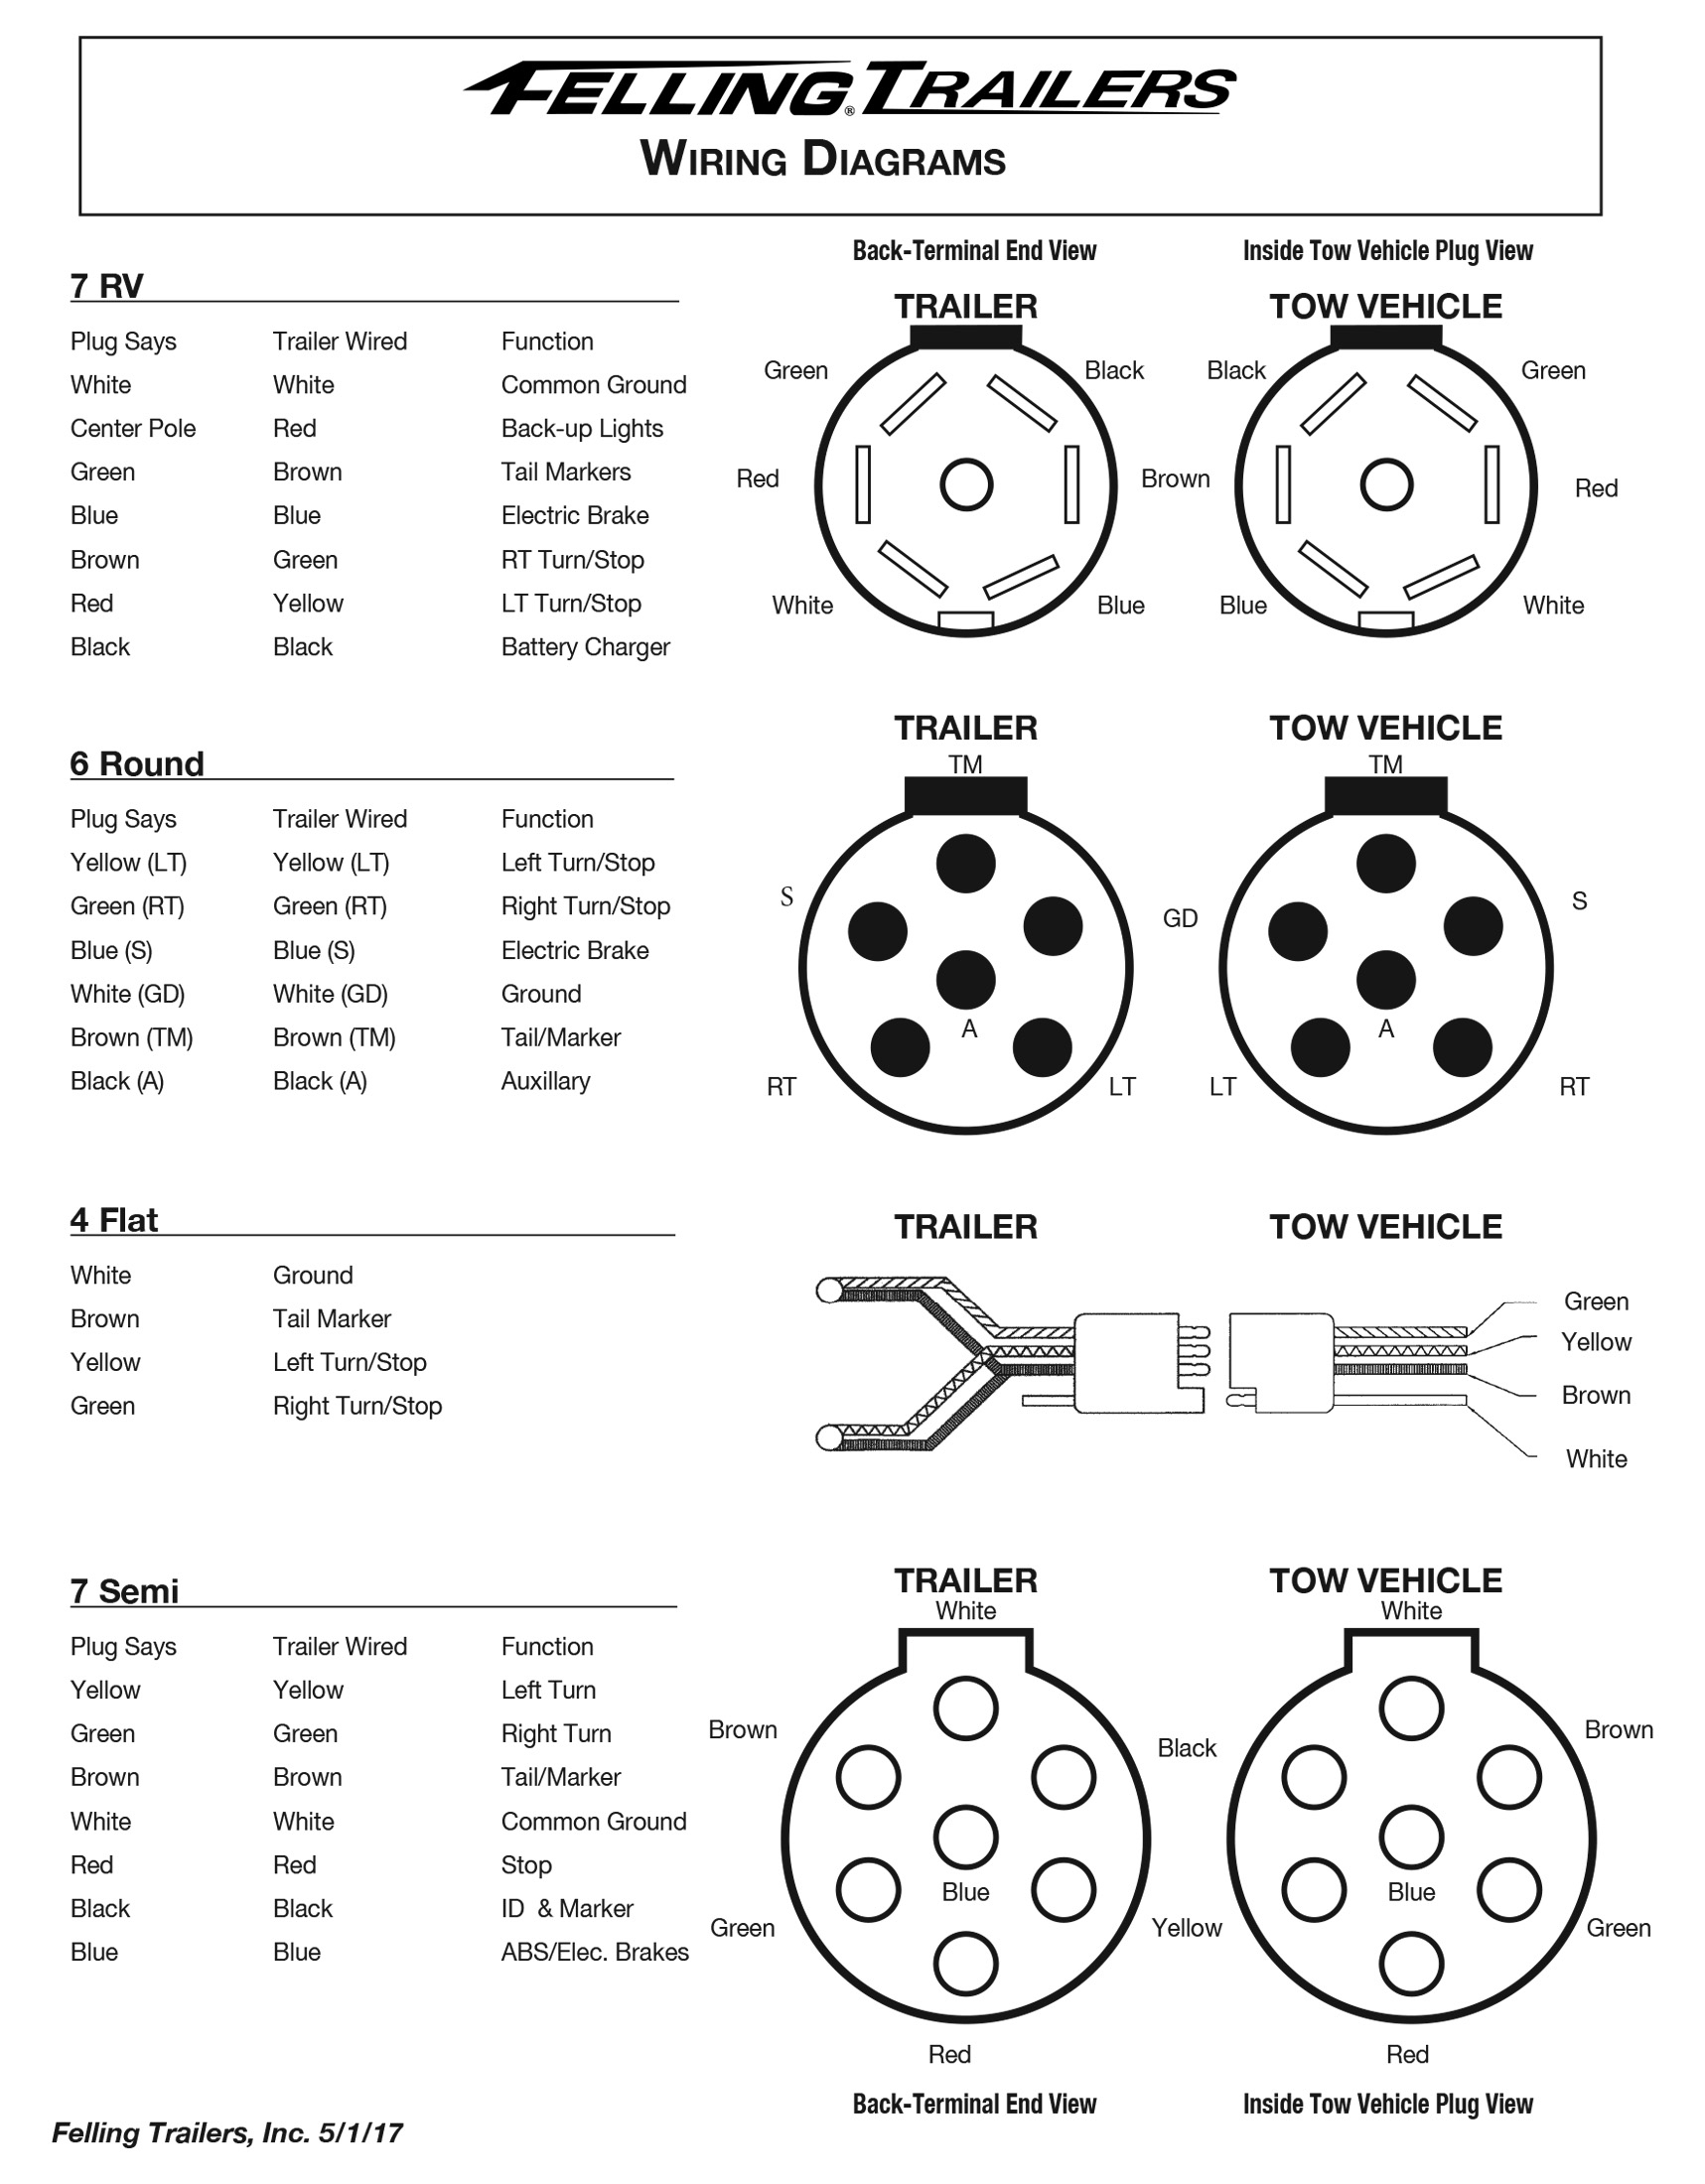 Service- Felling Trailers Wiring Diagrams, Wheel Toque - Wiring Diagram For Trailer